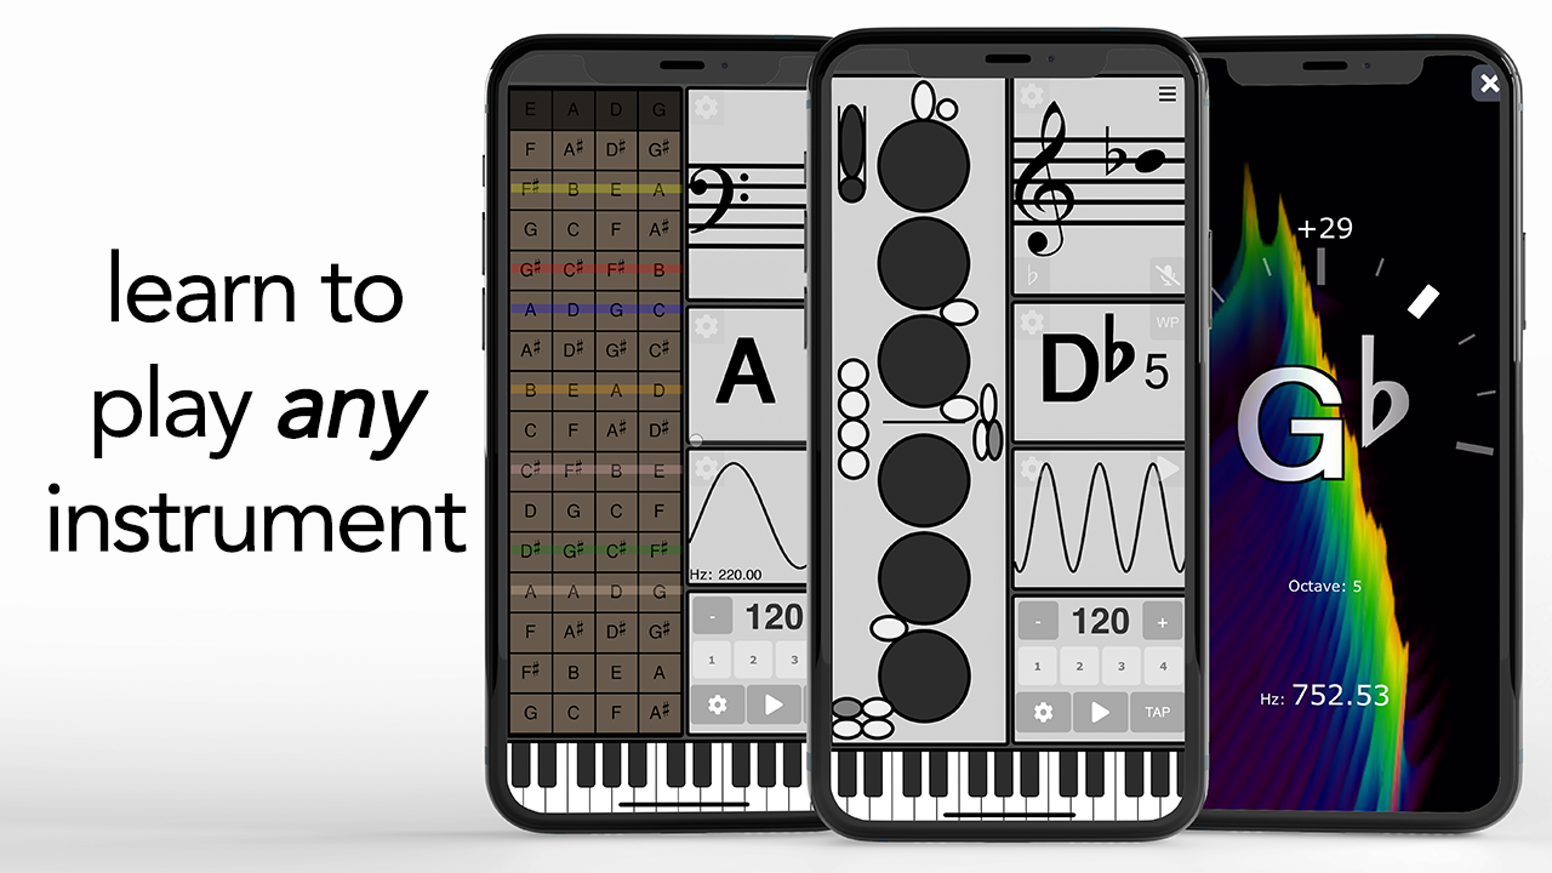 A new app for music education. Instrument Bible is a virtual fingering chart for brass, woodwind, and string instruments.